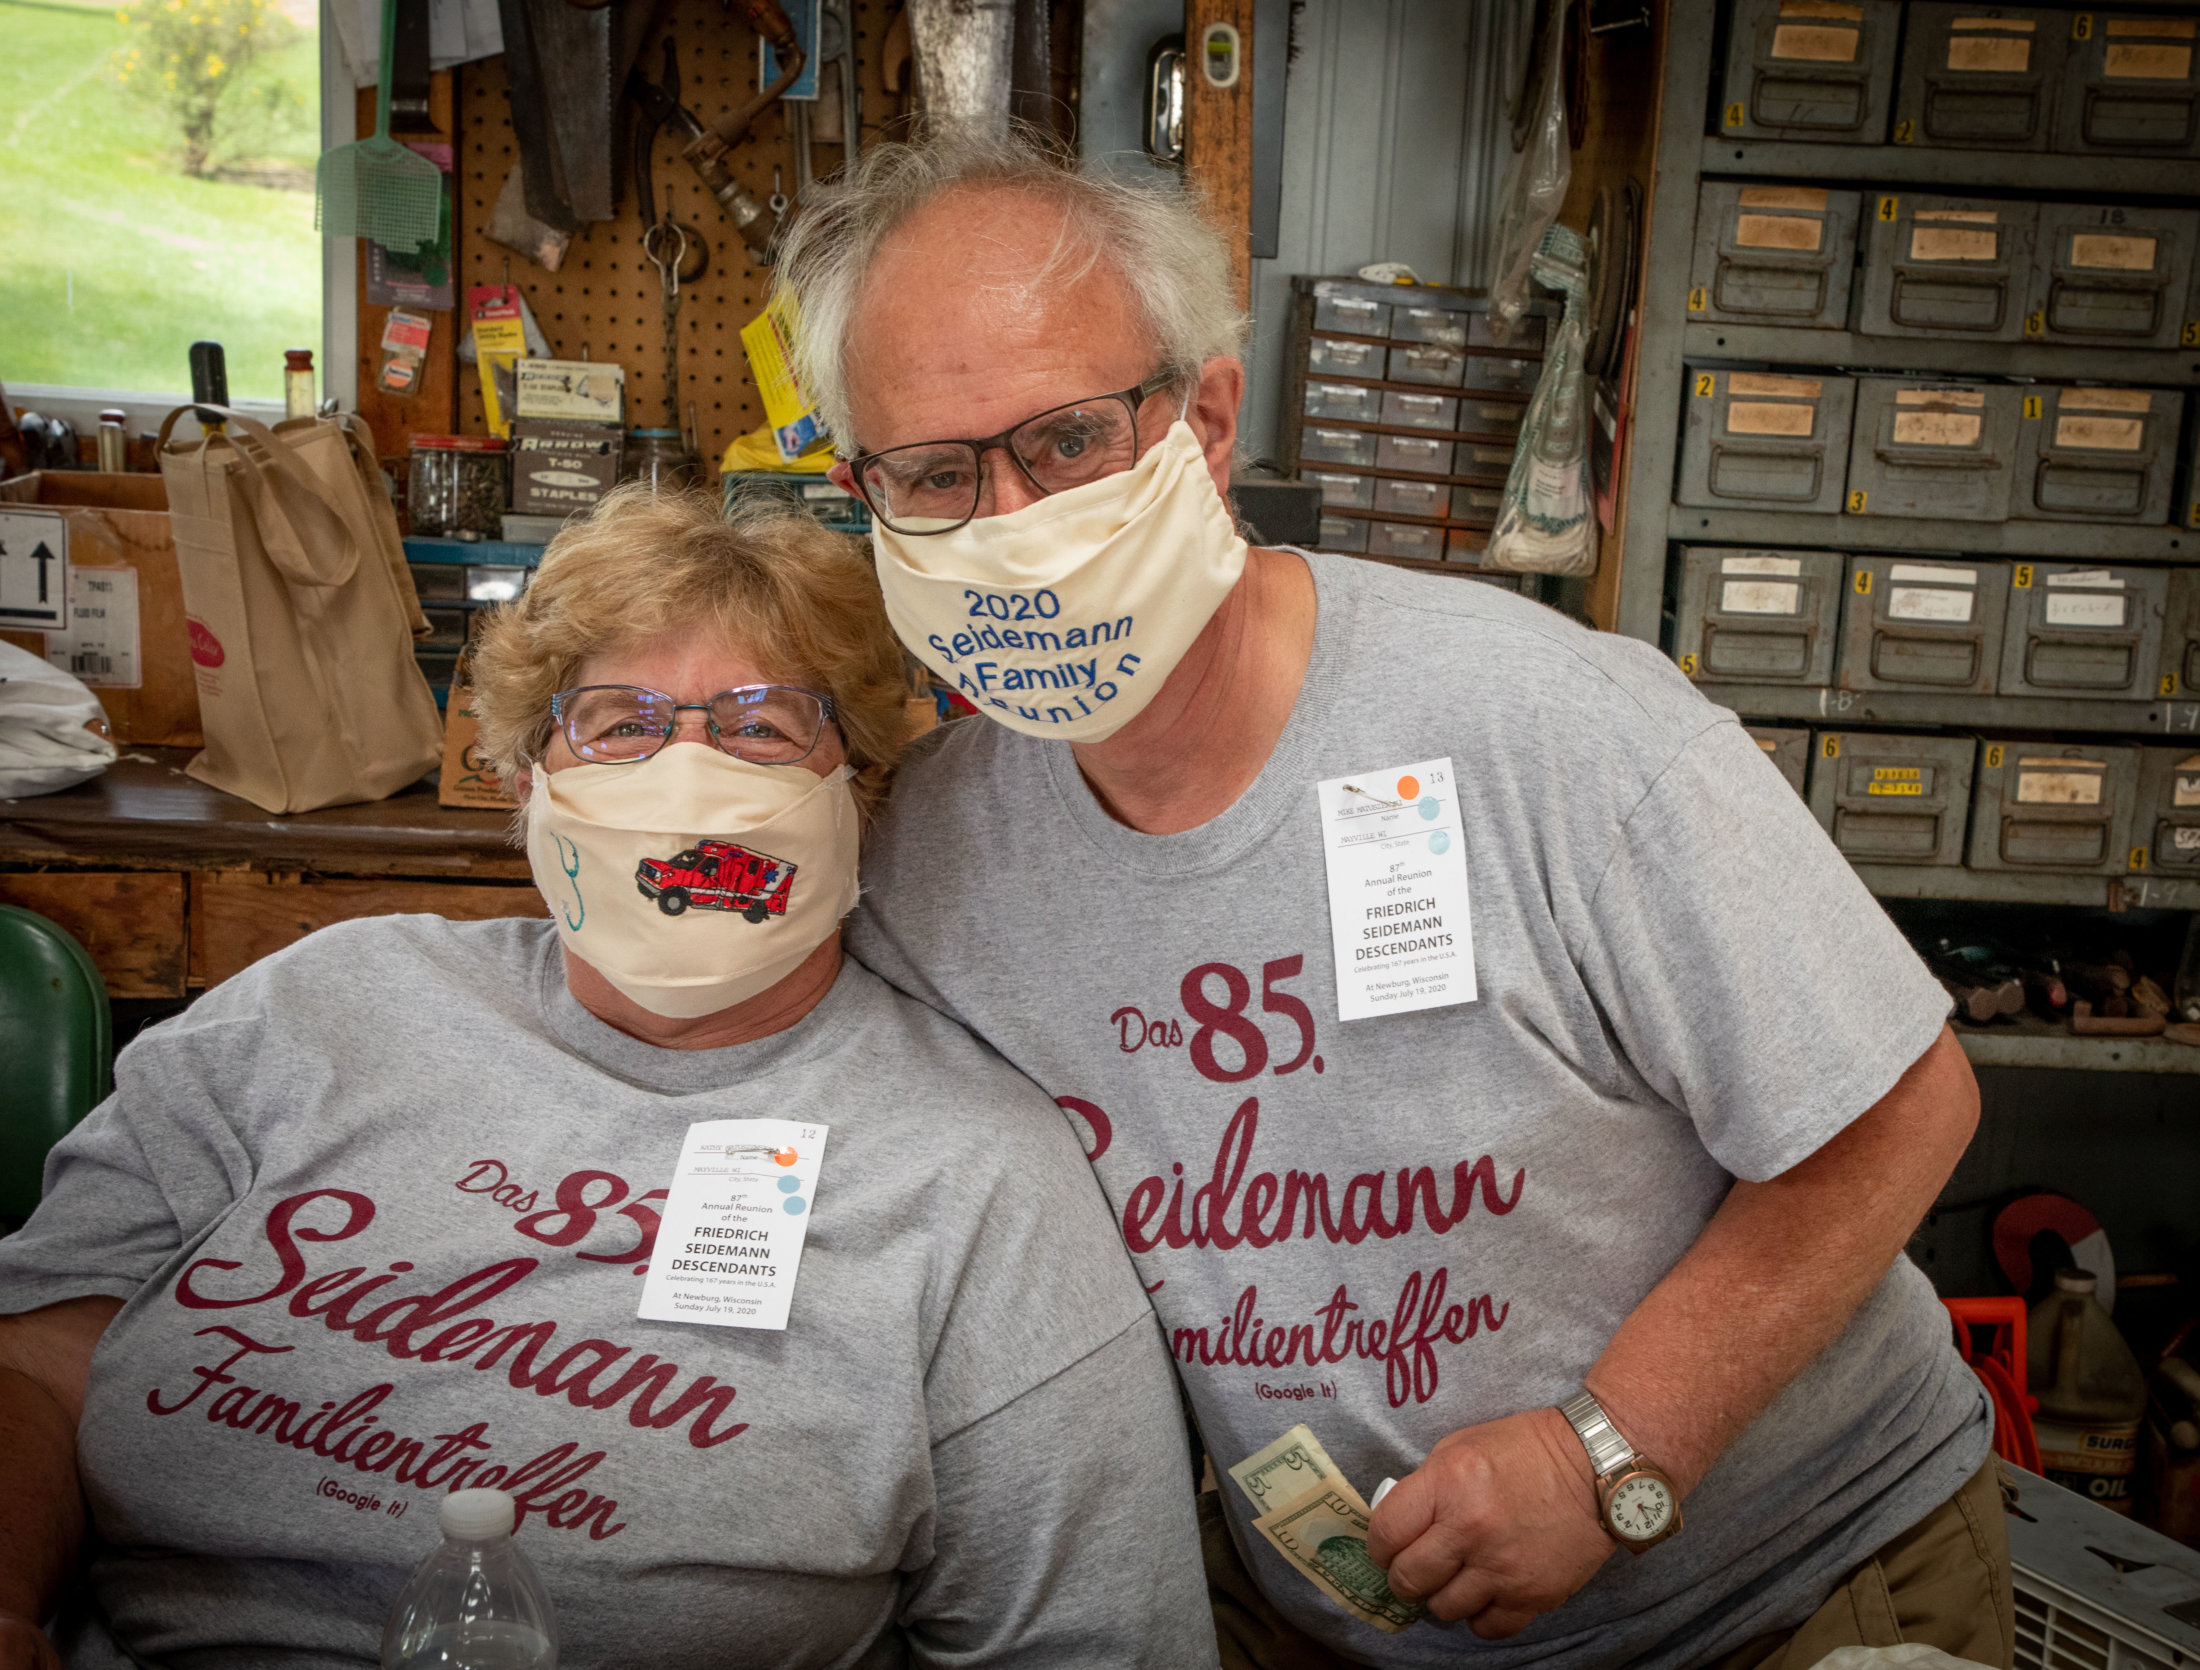 Talented Mask creator and her husband